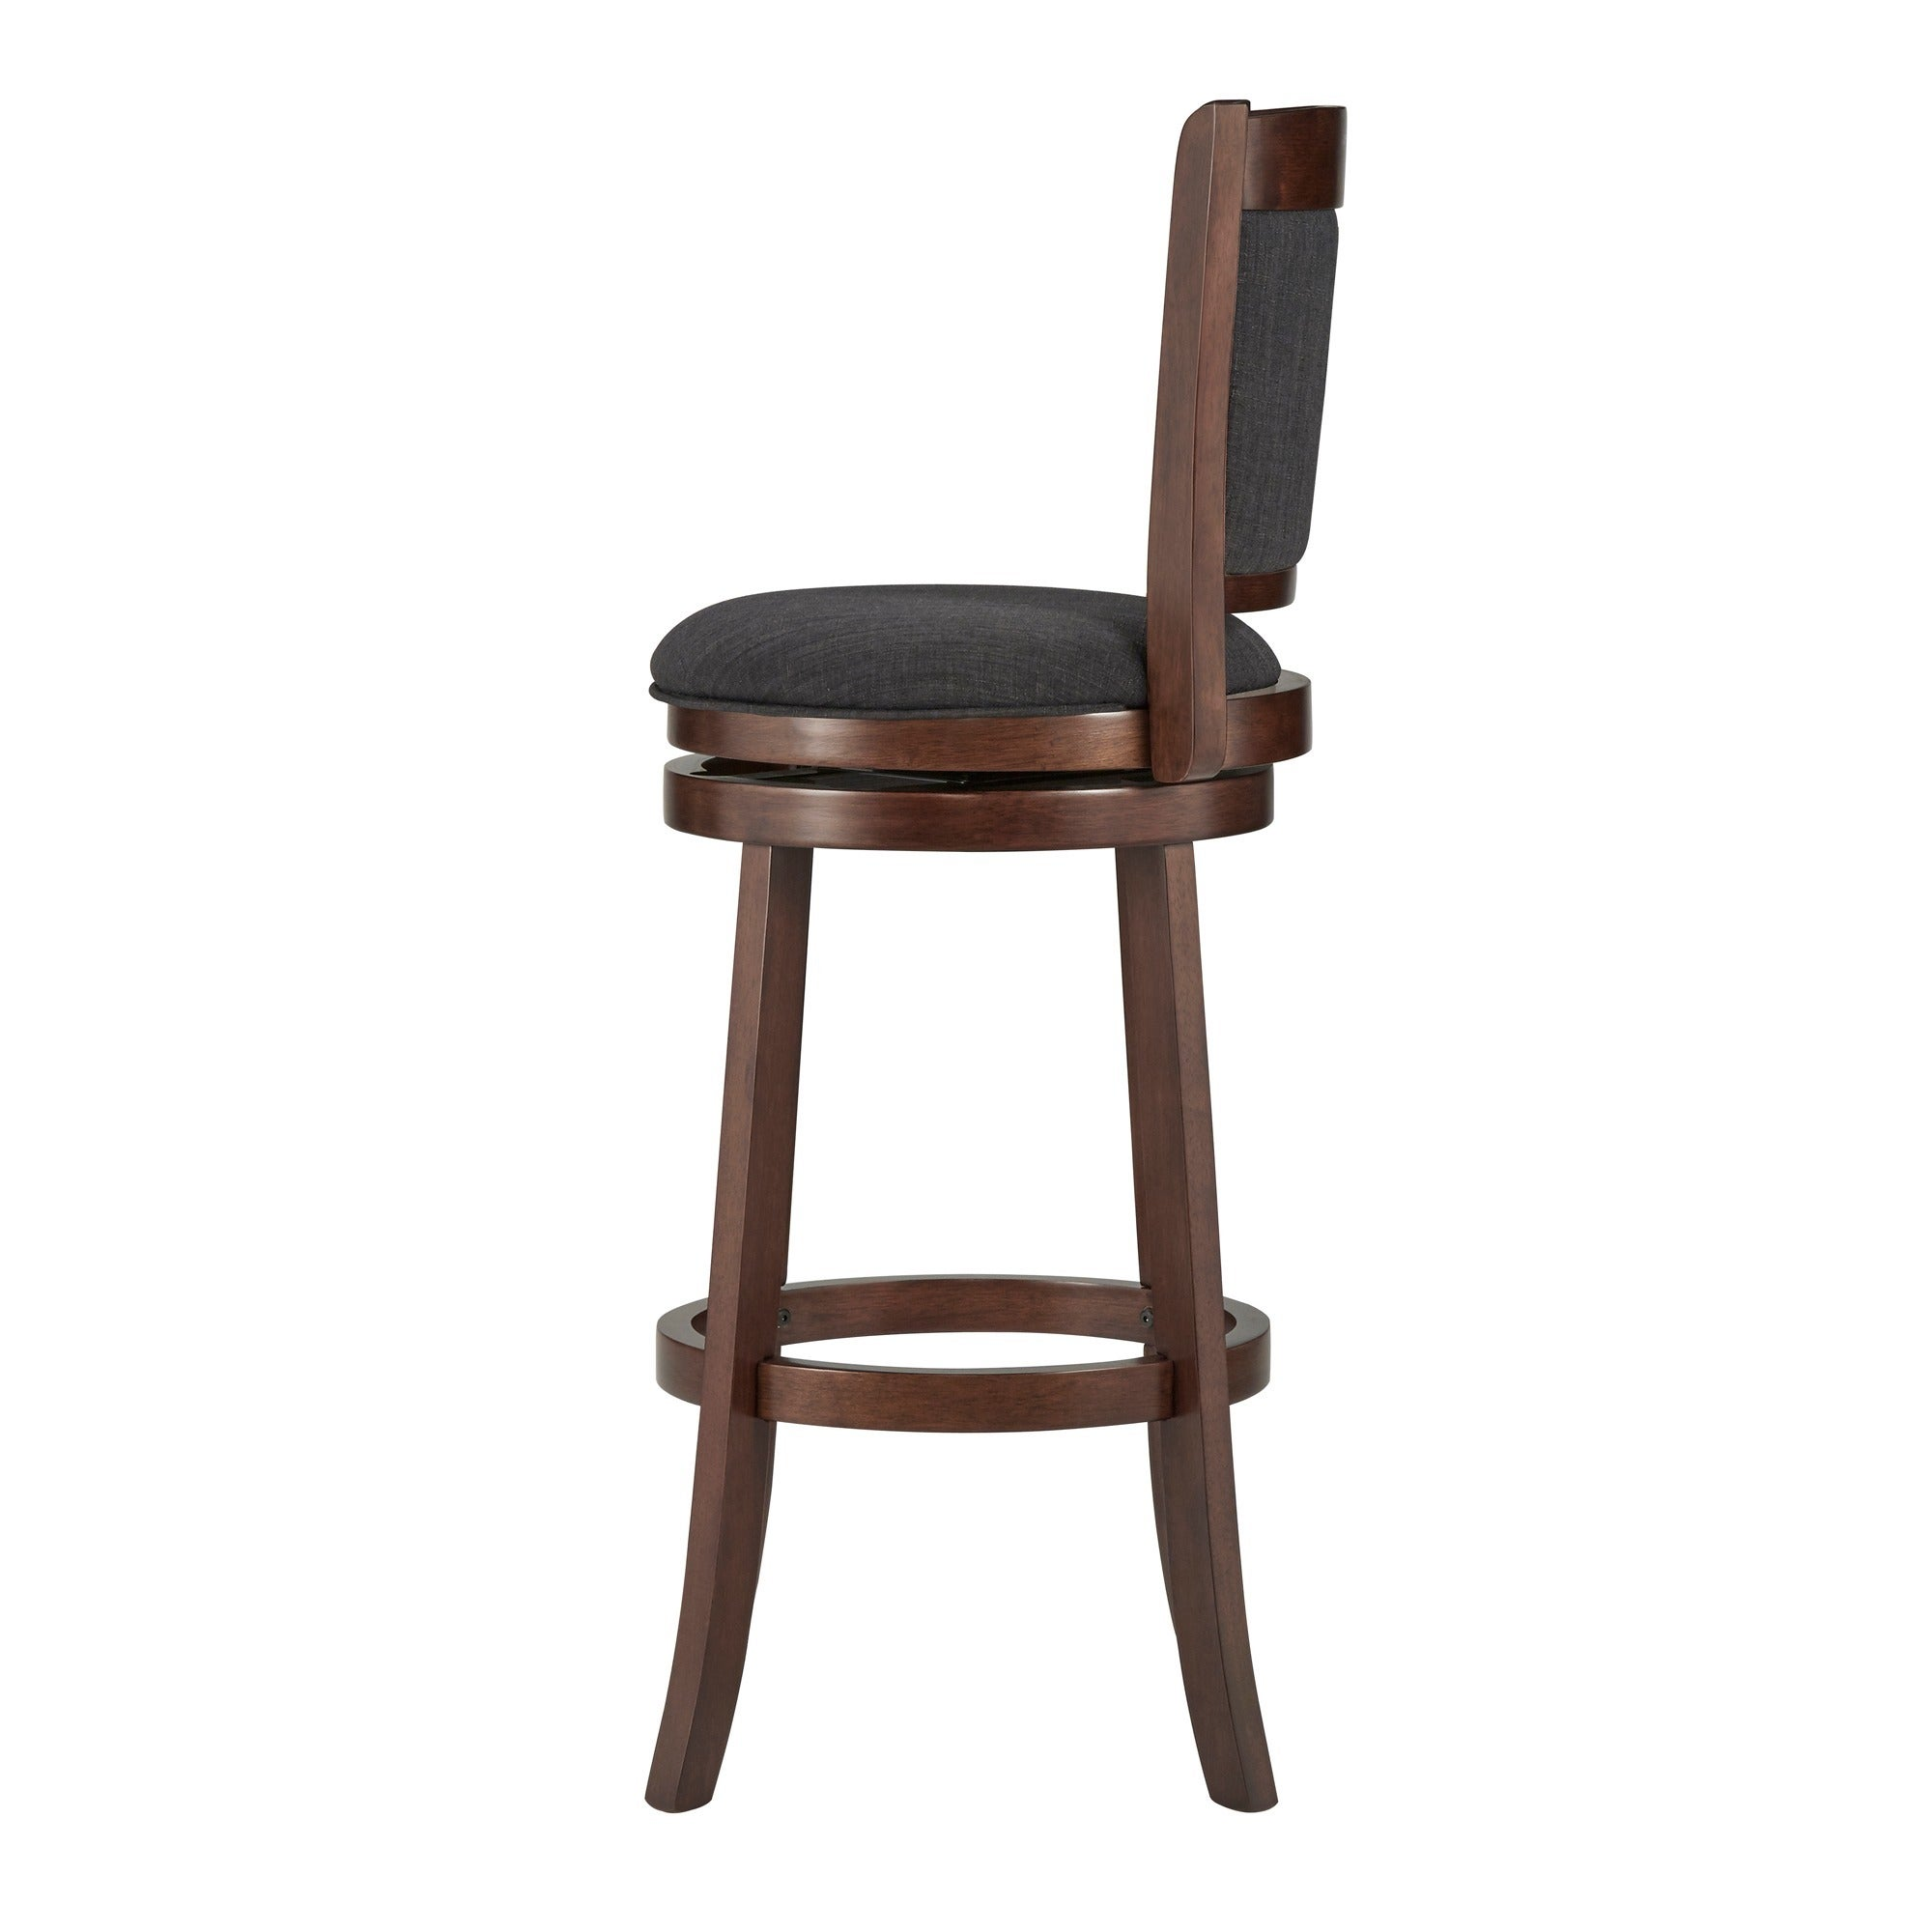 and chairs arms high bar cushions back bonanza backs stool insider rusticl stools counter www with oak